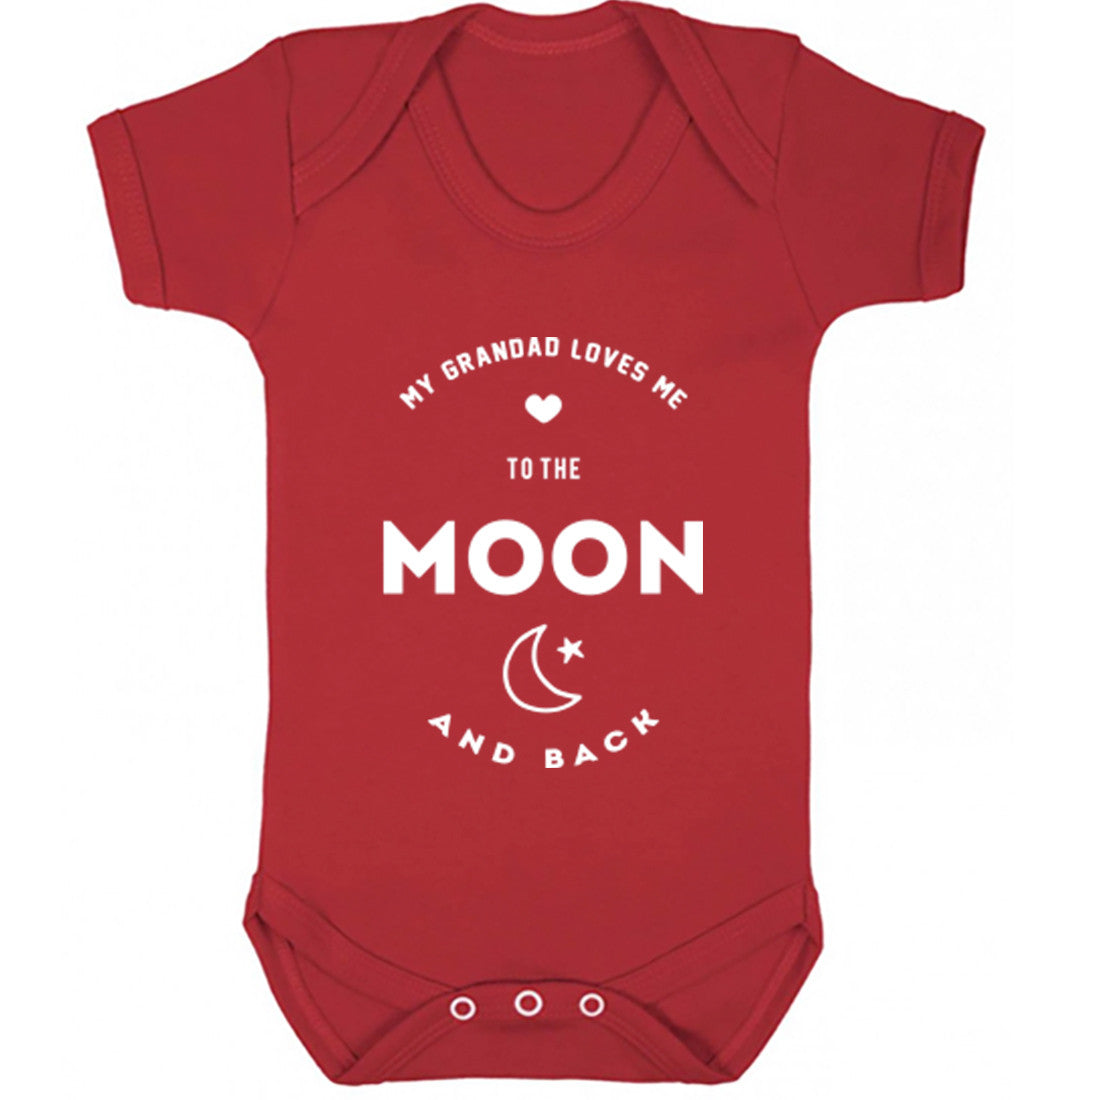 My Grandad Loves Me To The Moon And Back Baby Vest K1543 - Illustrated Identity Ltd.